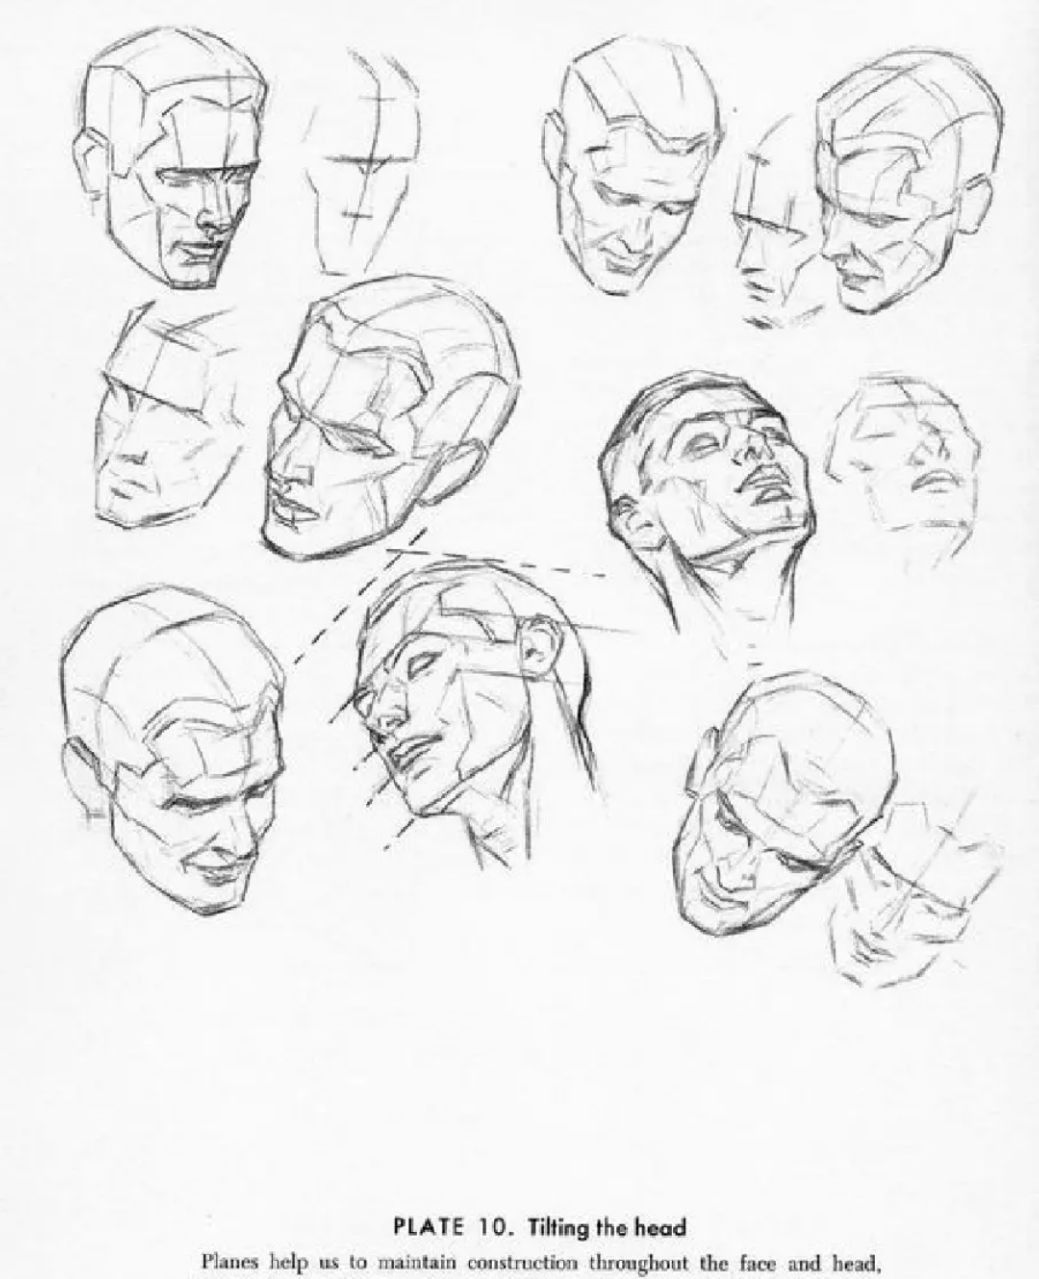 Pin By Stefano Lorenzo On Art I Need To Study In 2020 Face Drawing Drawing Tutorial Face Drawing Heads